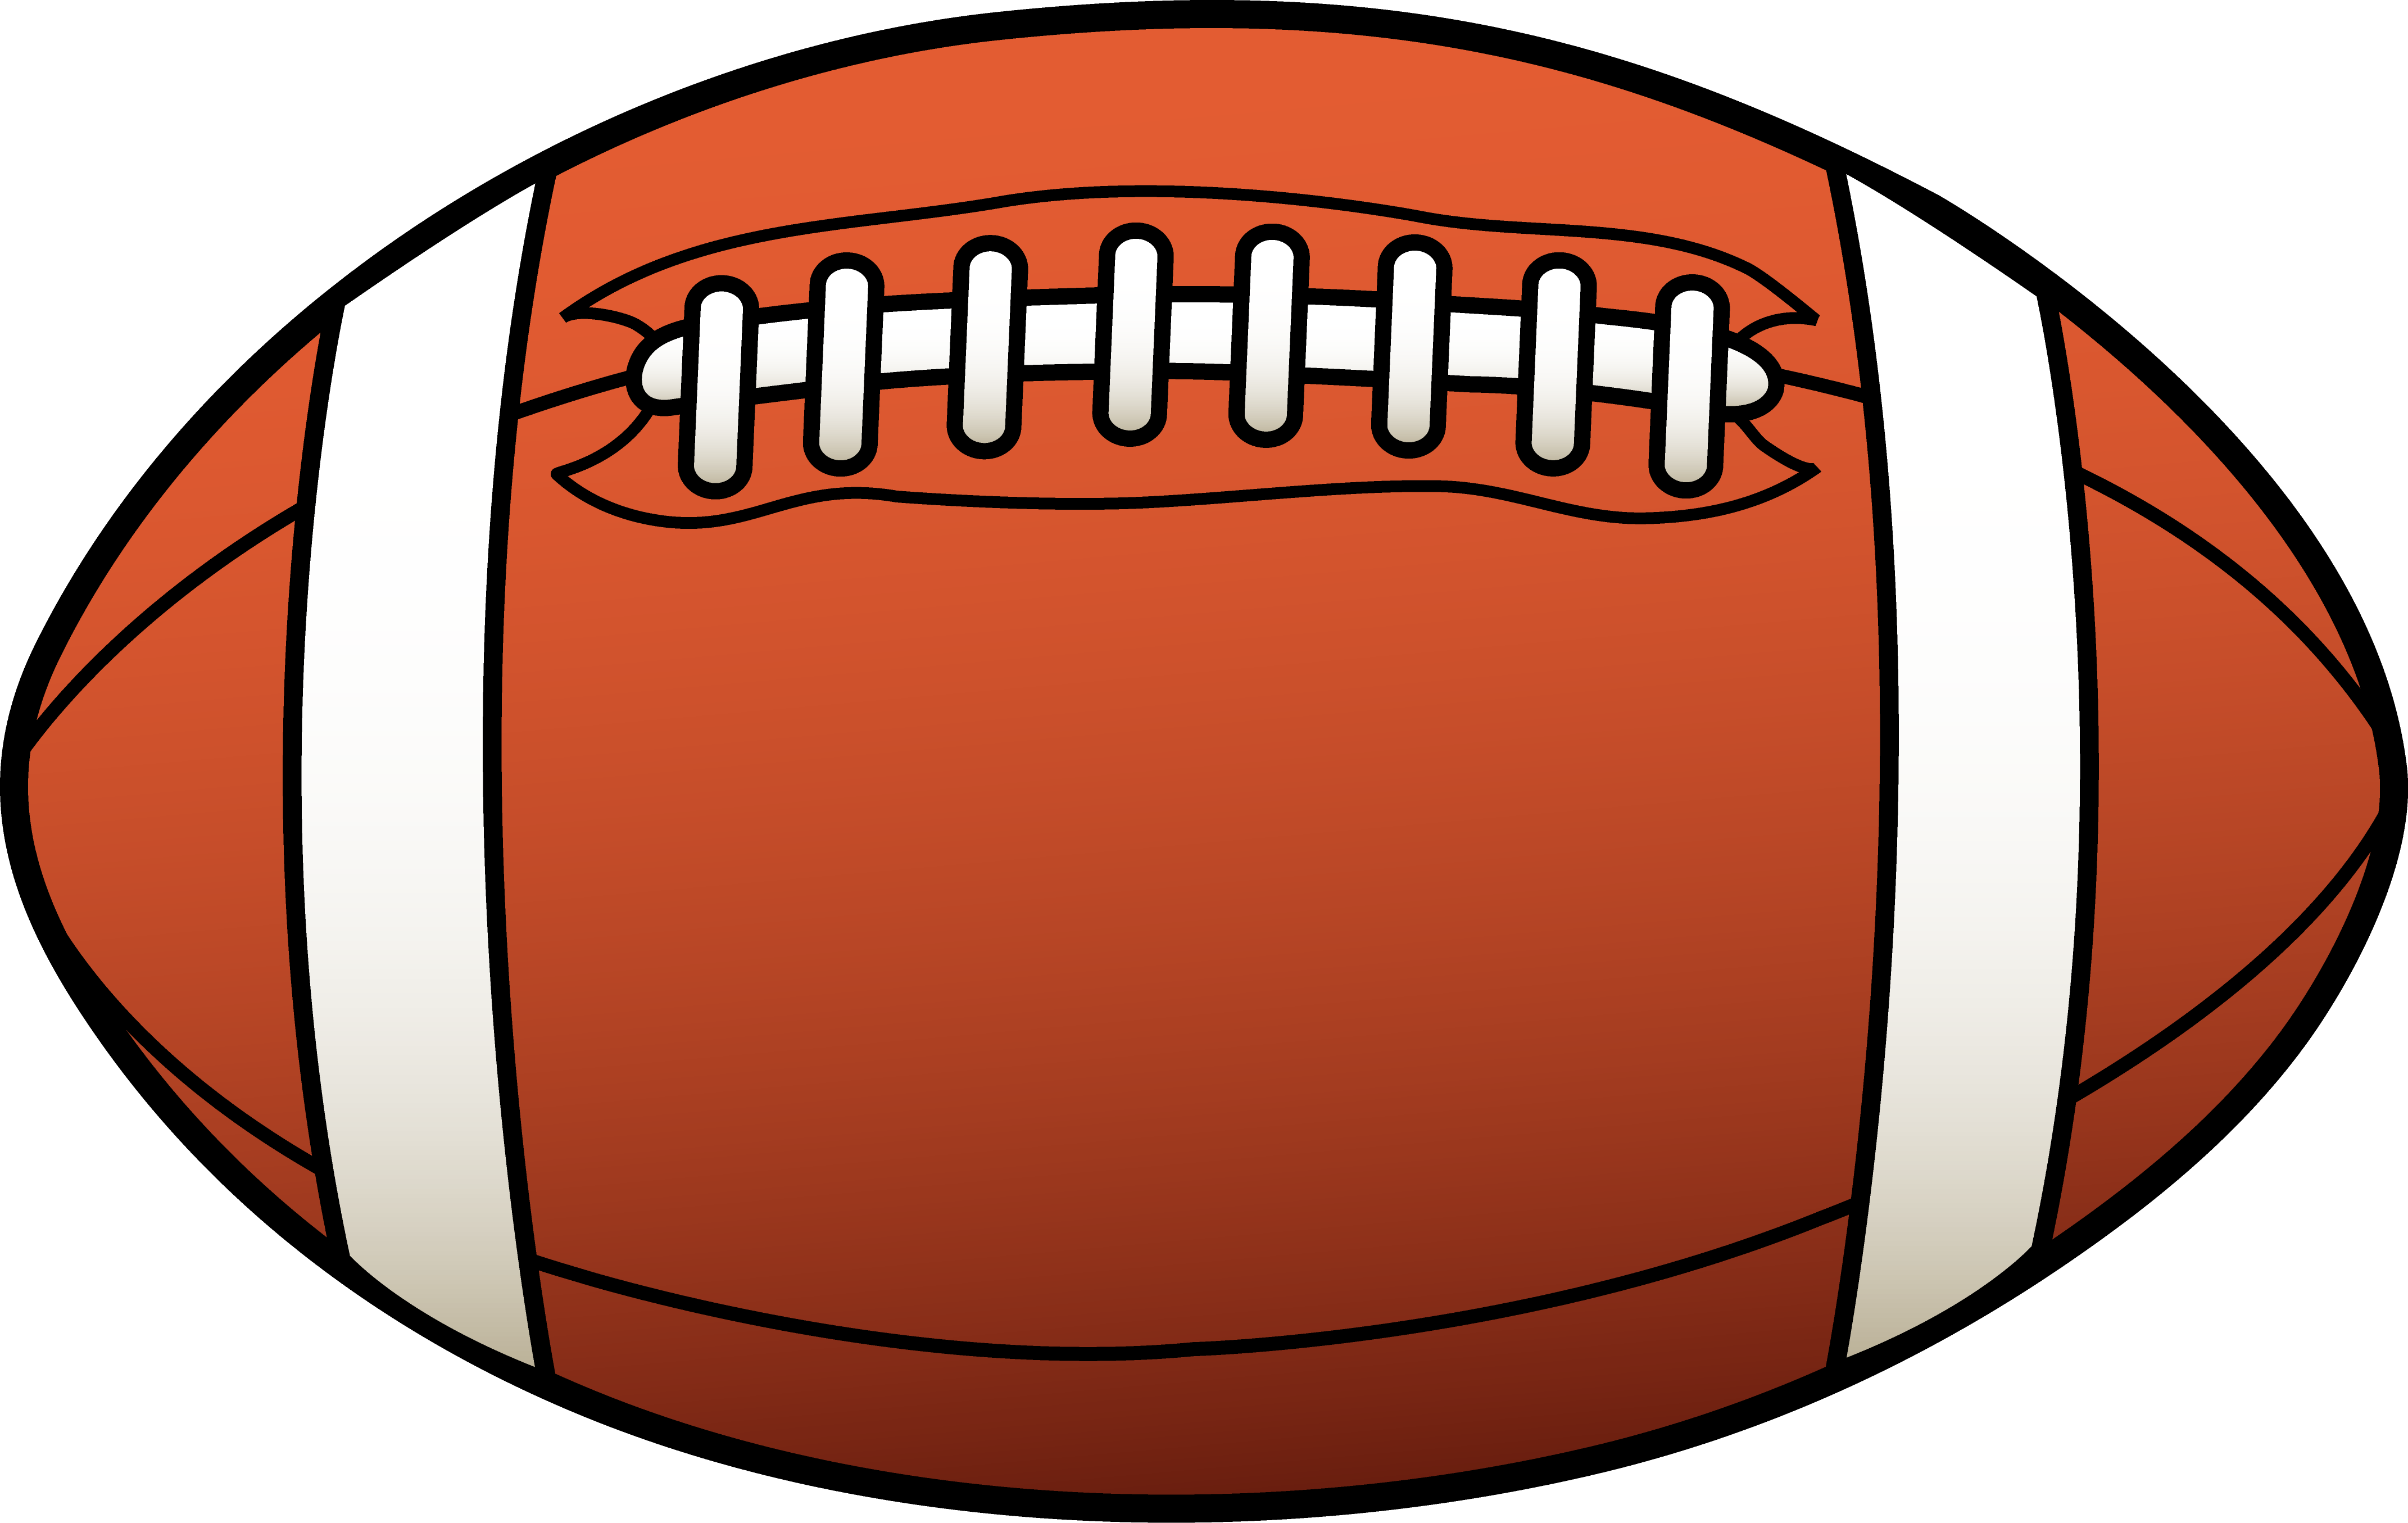 Football Clipart Free | Clipart Panda - Free Clipart Images